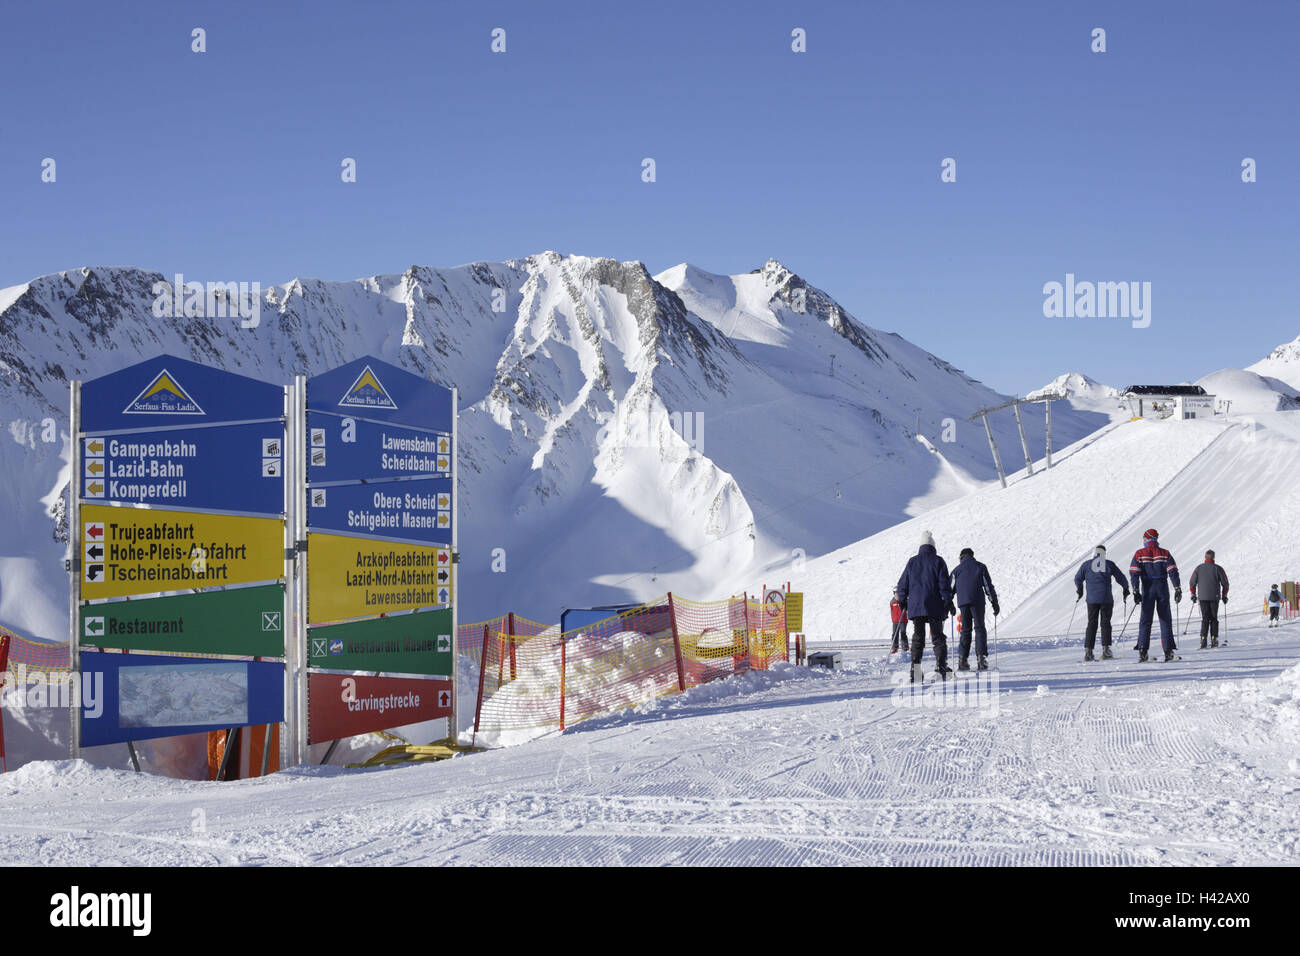 Austria, Tyrol, Serfaus, ski runways, signposts, skiers, no model release, alps, mountains, mountains, season, winter, - Stock Image